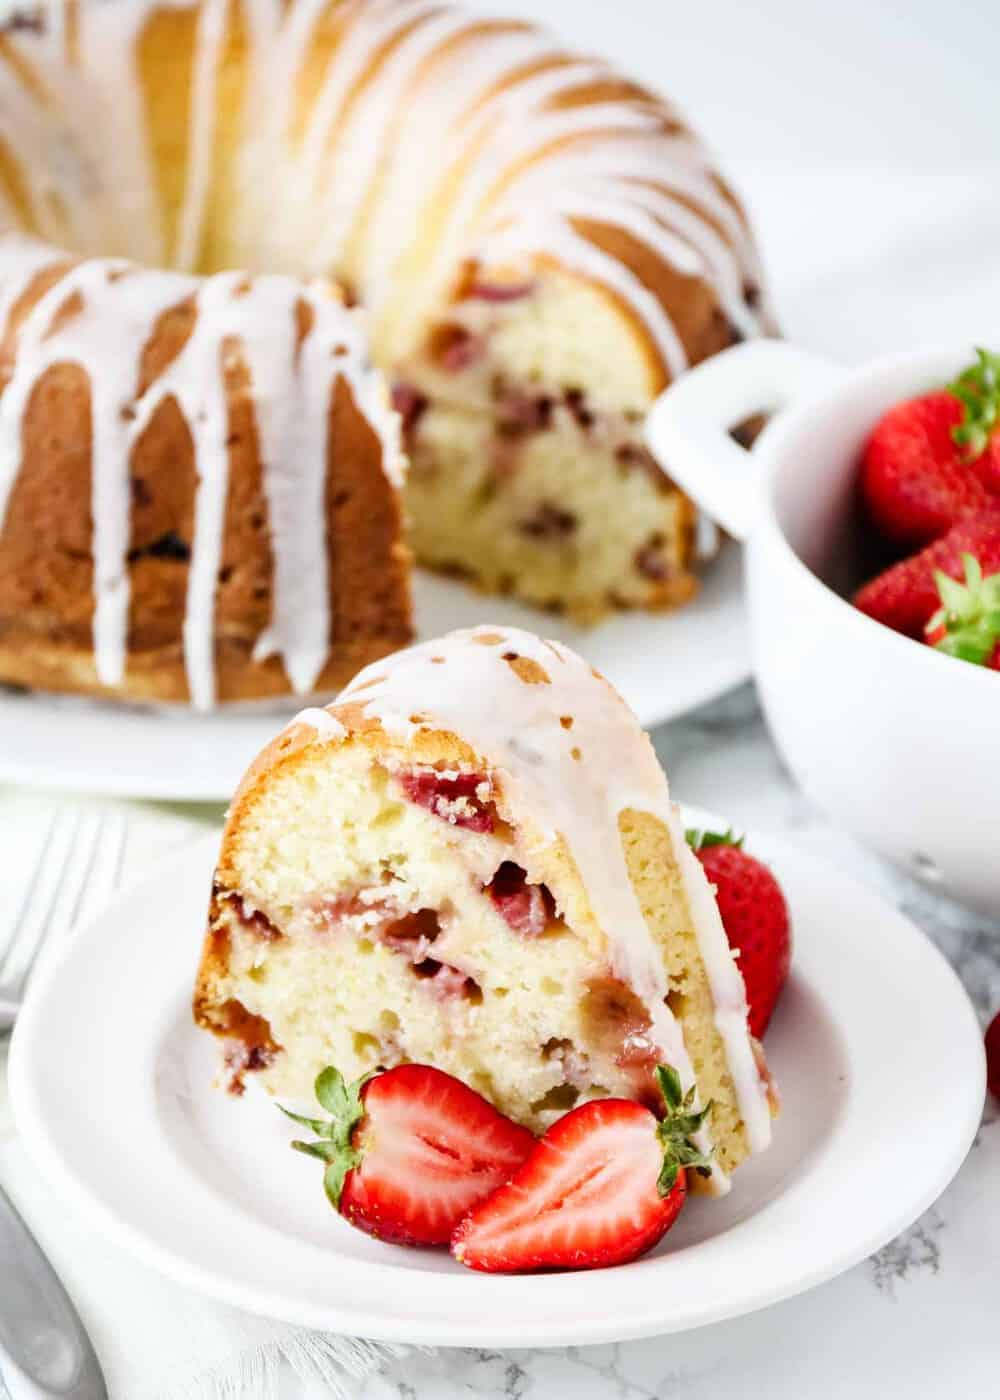 strawberry bundt cake on white plate with fresh strawberries